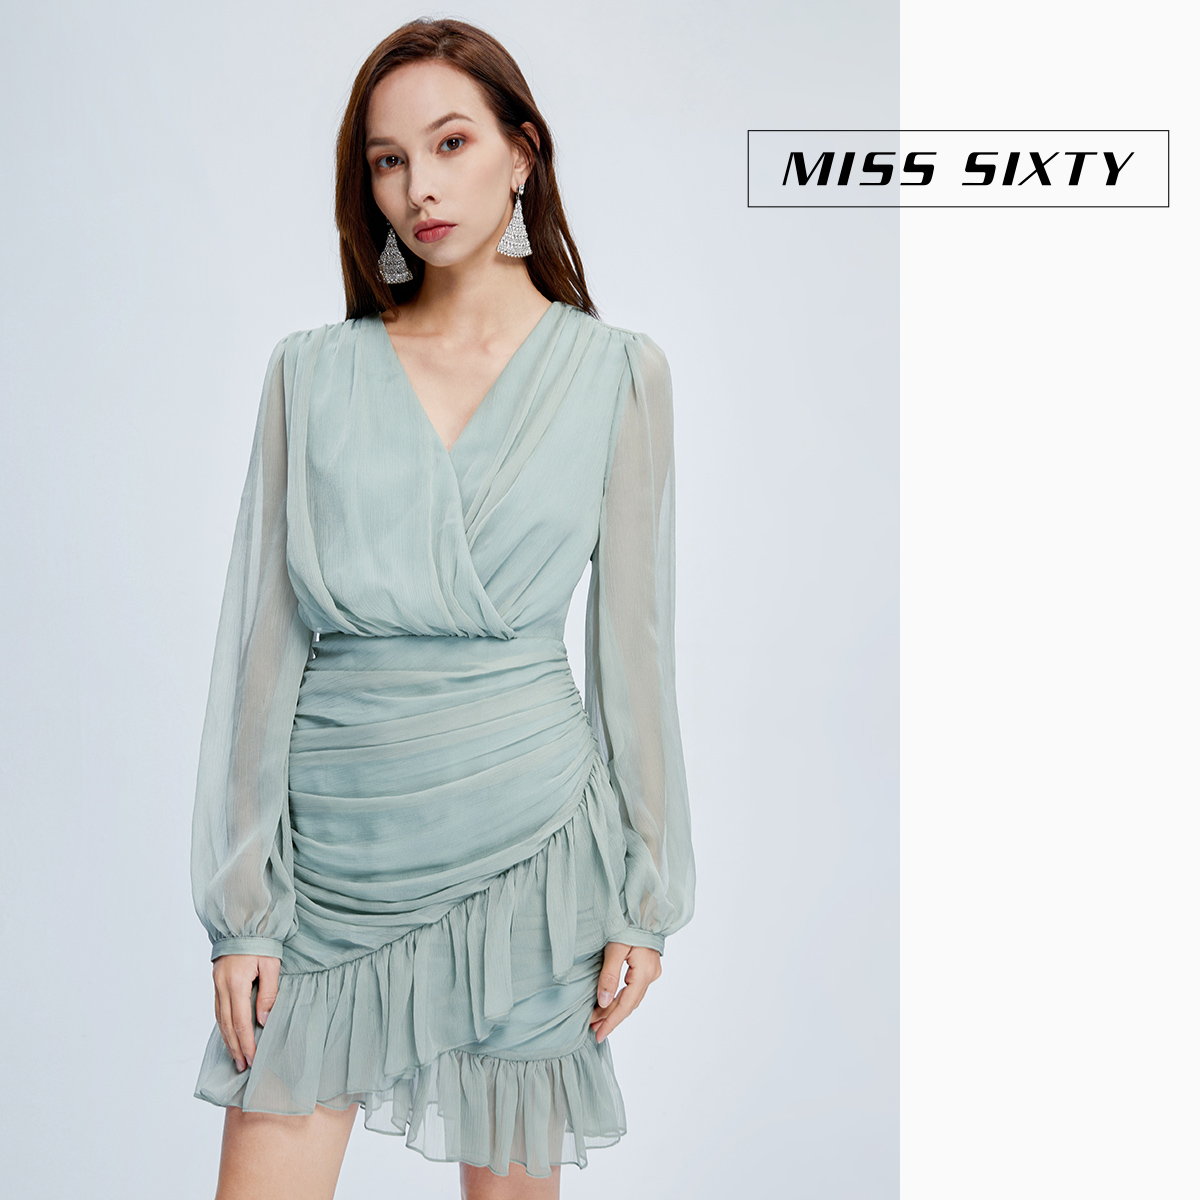 Miss sixty2020 spring new V-neck pleated high waist short skirt Long Sleeve Chiffon dress female